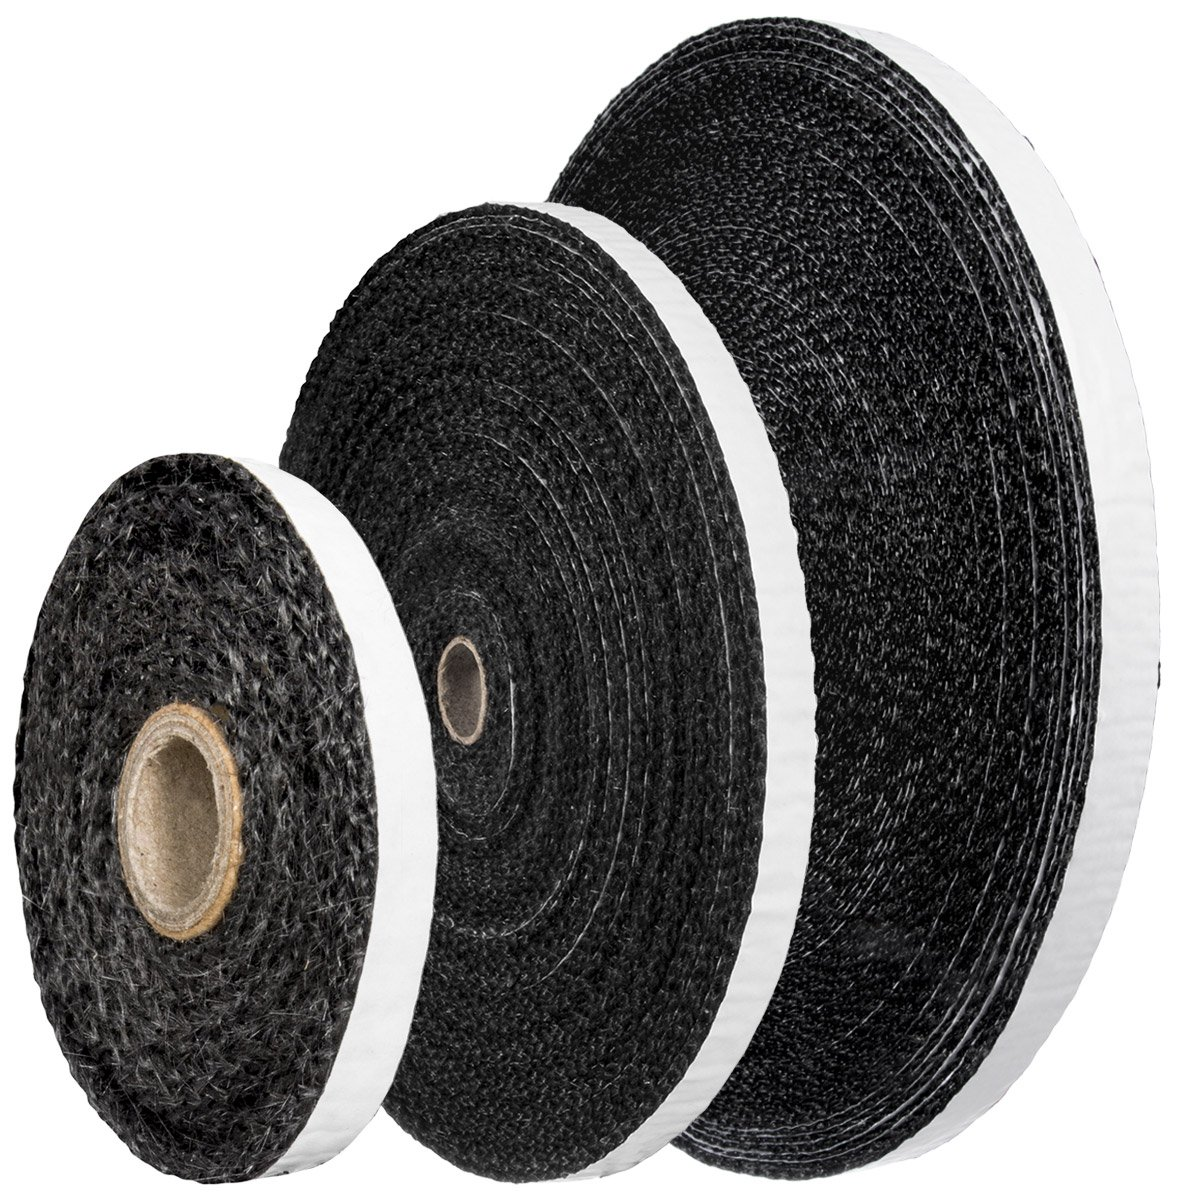 STEIGNER Self-Adhesive Fiberglass Tape SKD03 2 m 25x3 mm Black For Fireplaces Heat Resistant To Temperature up to 550°C or 1022°F